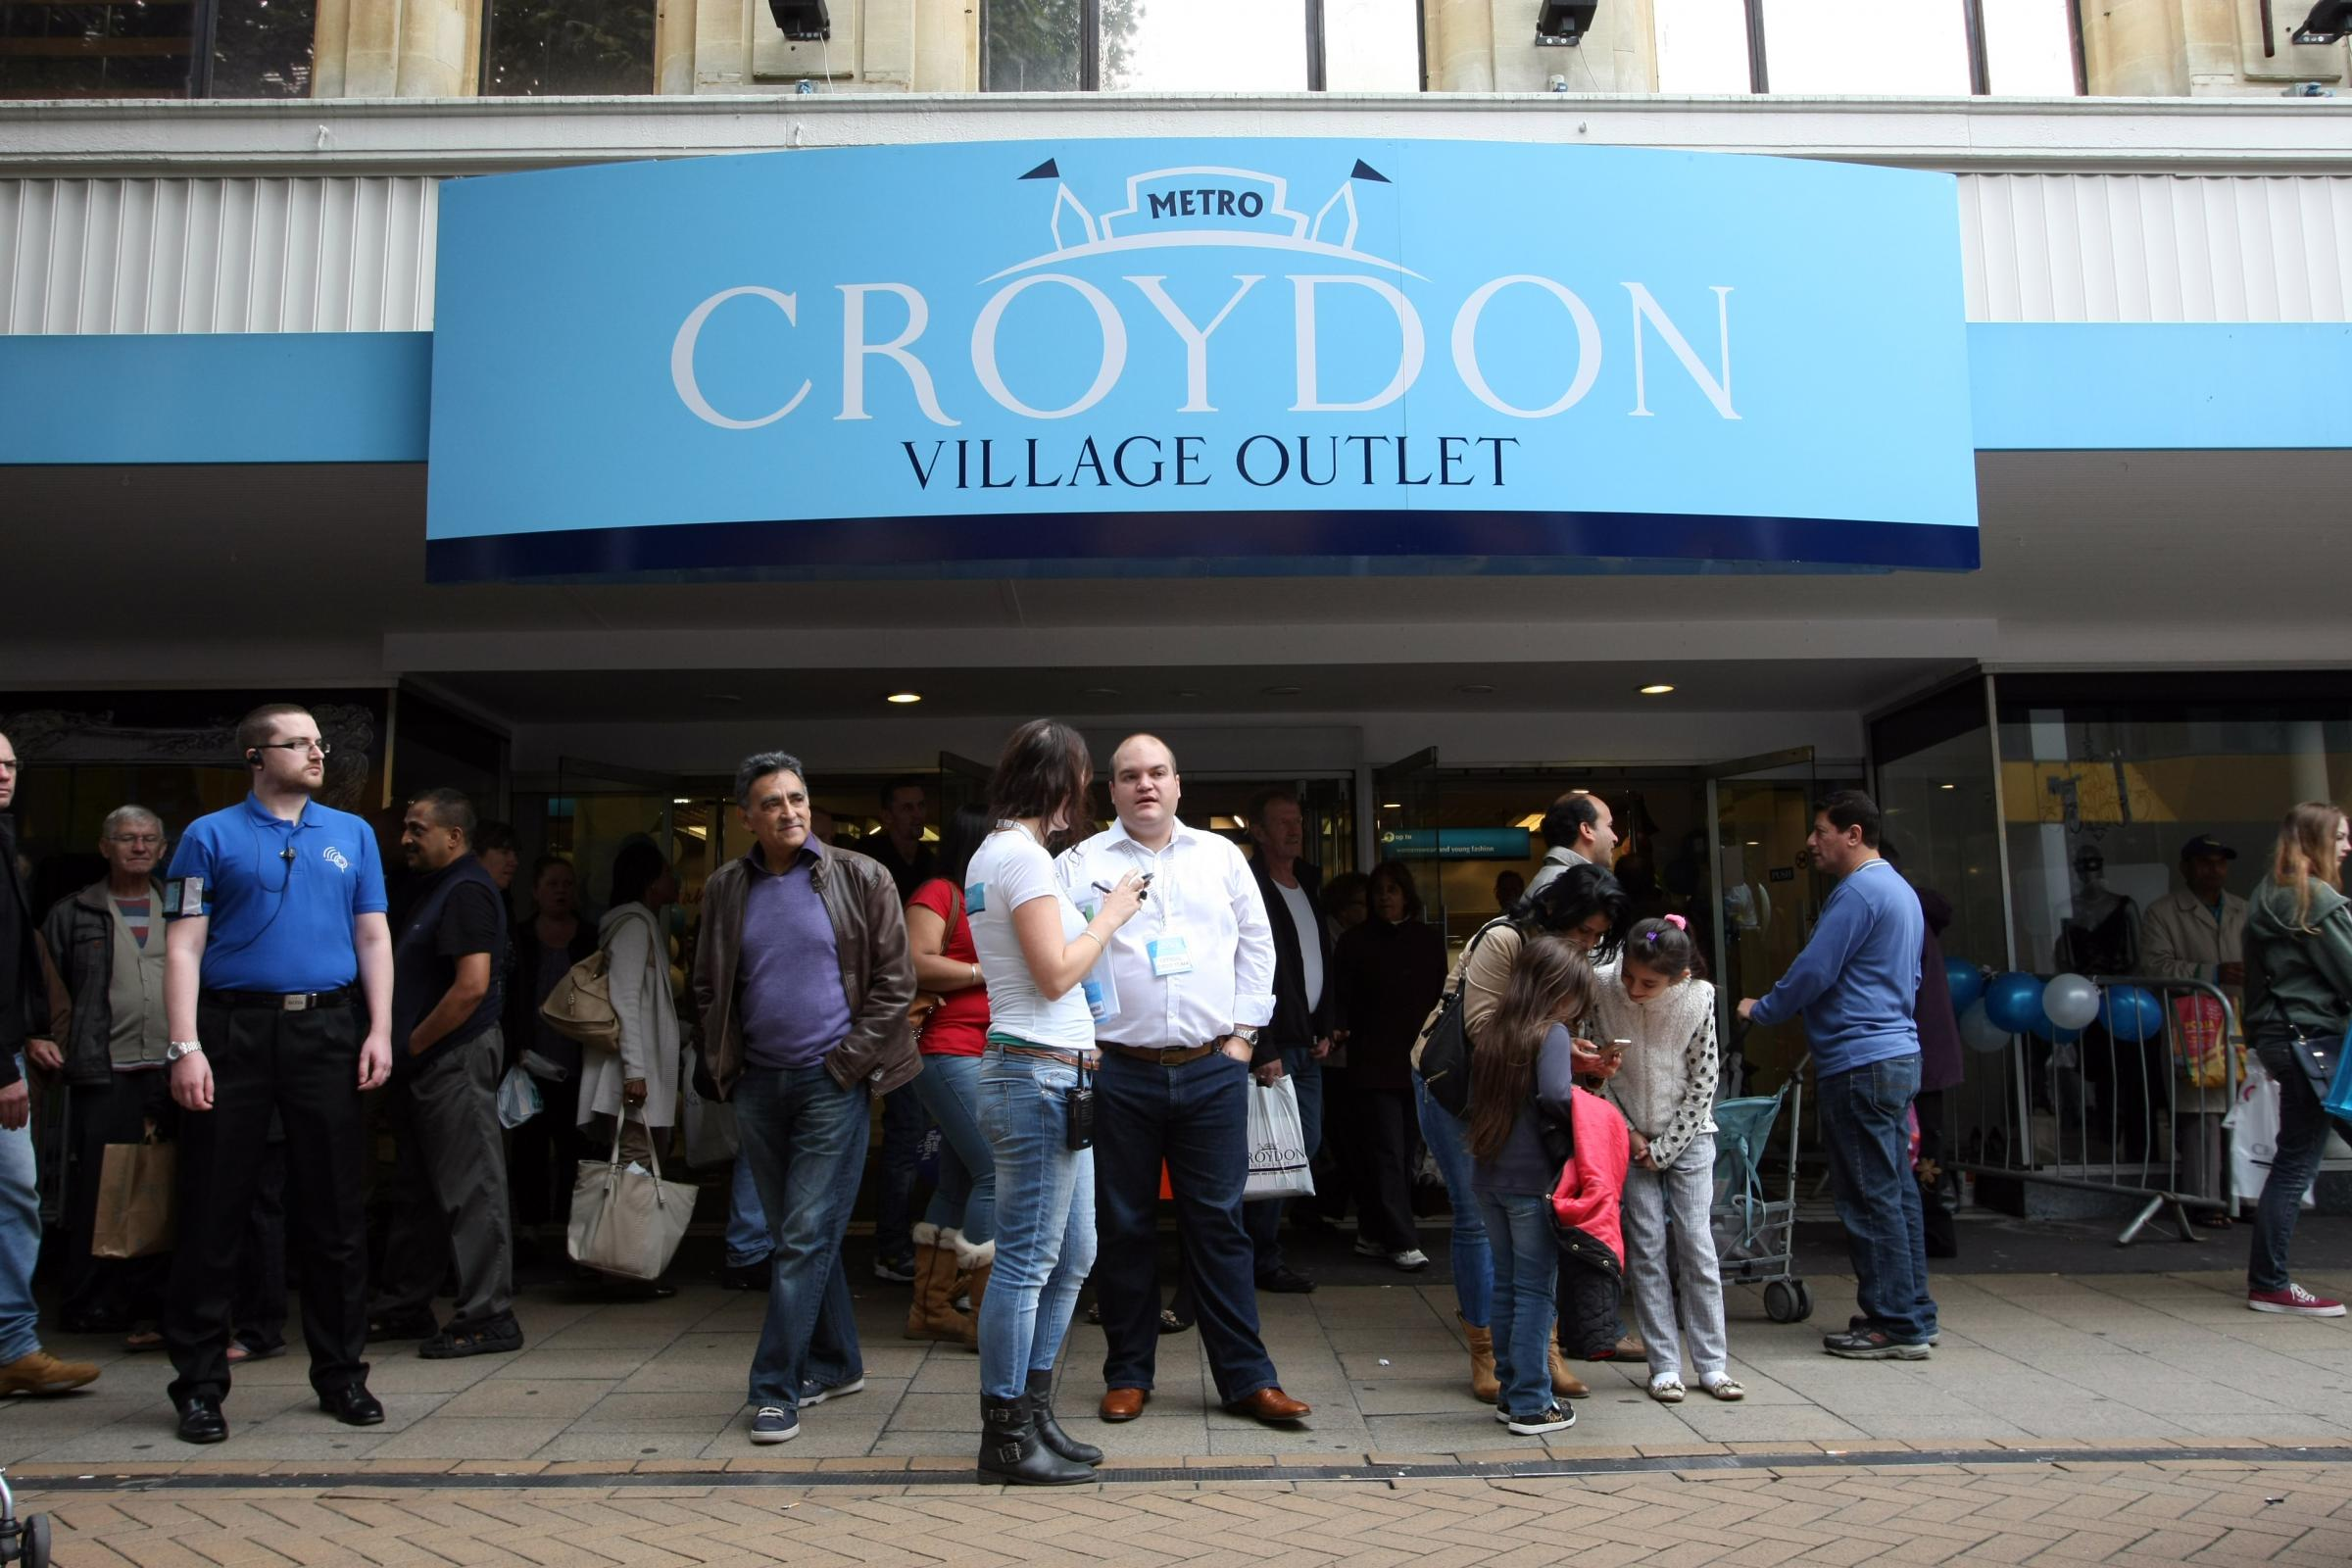 Croydon Village Outlet opened in September